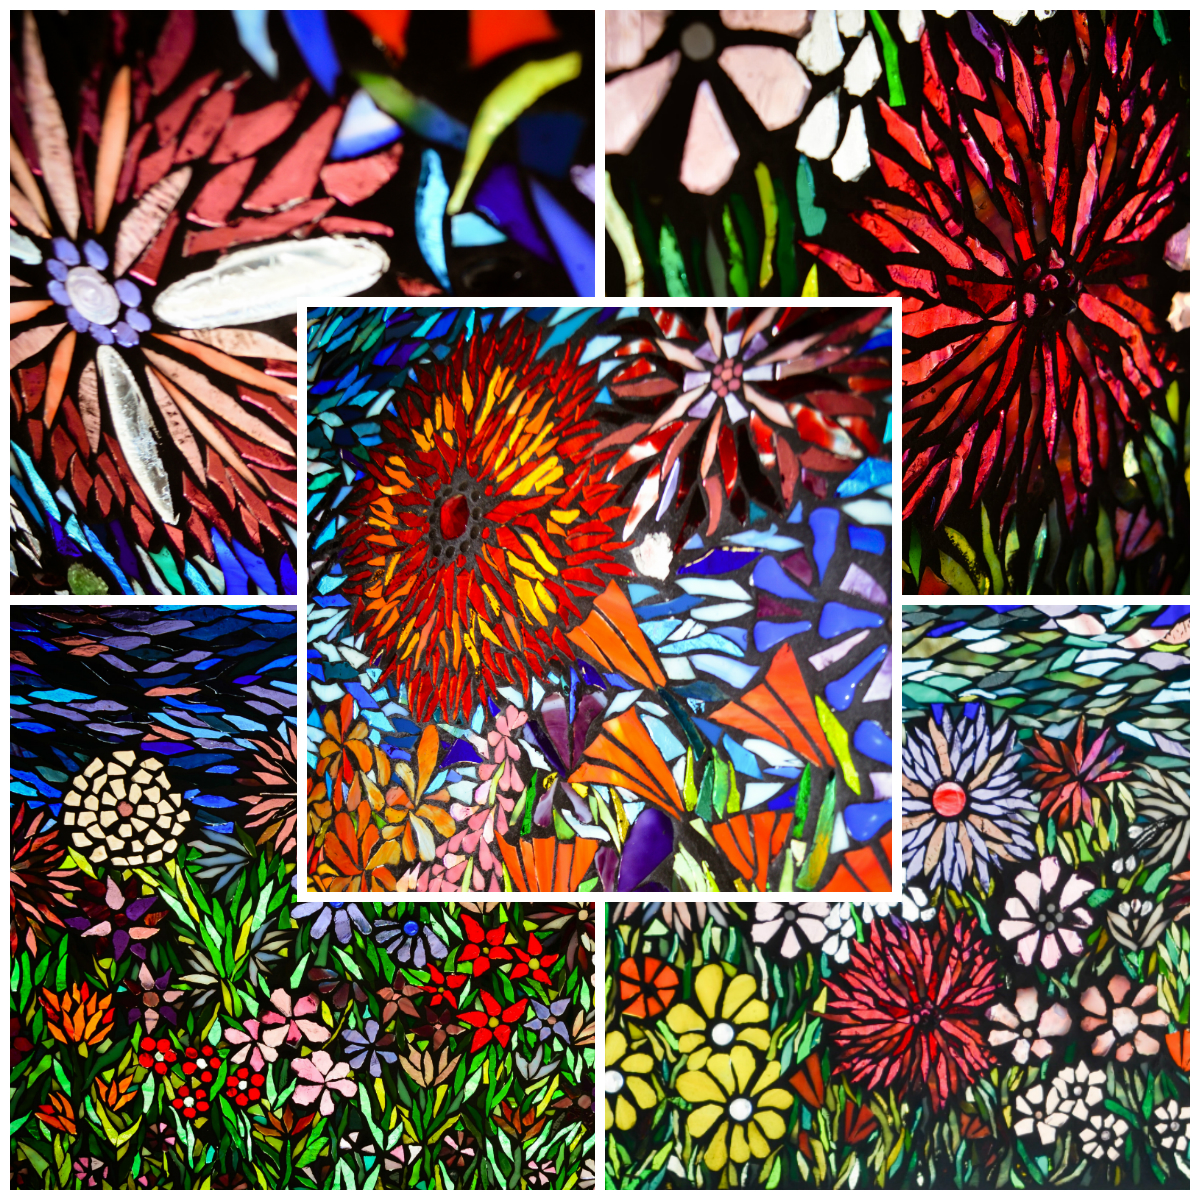 flower garden kd marvelous mosaic